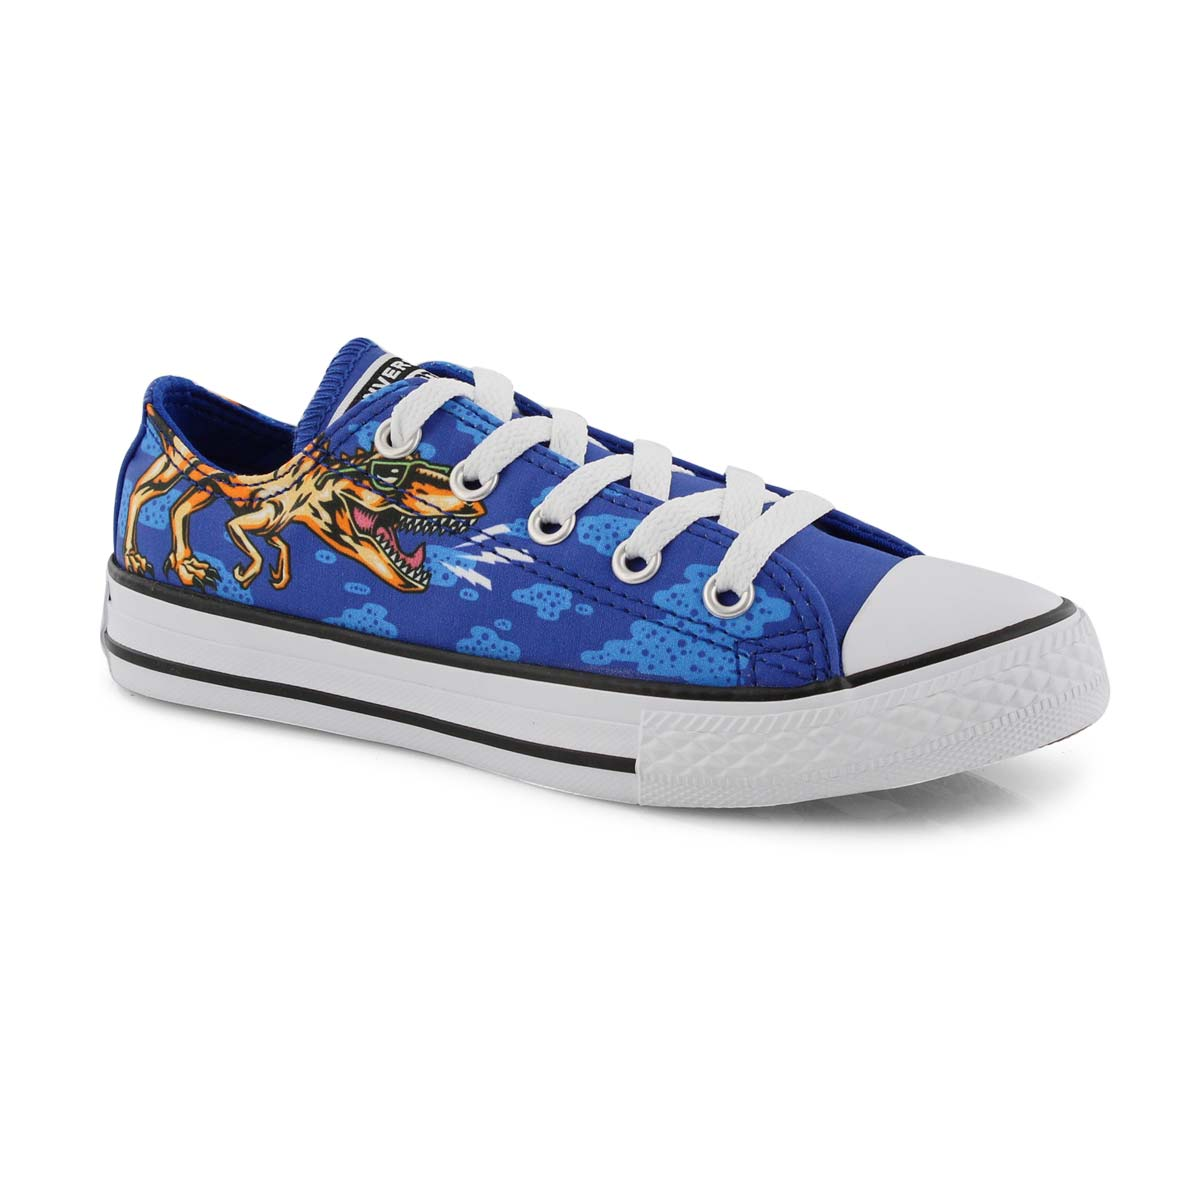 Bys CT AS blue/multi lace up sneaker